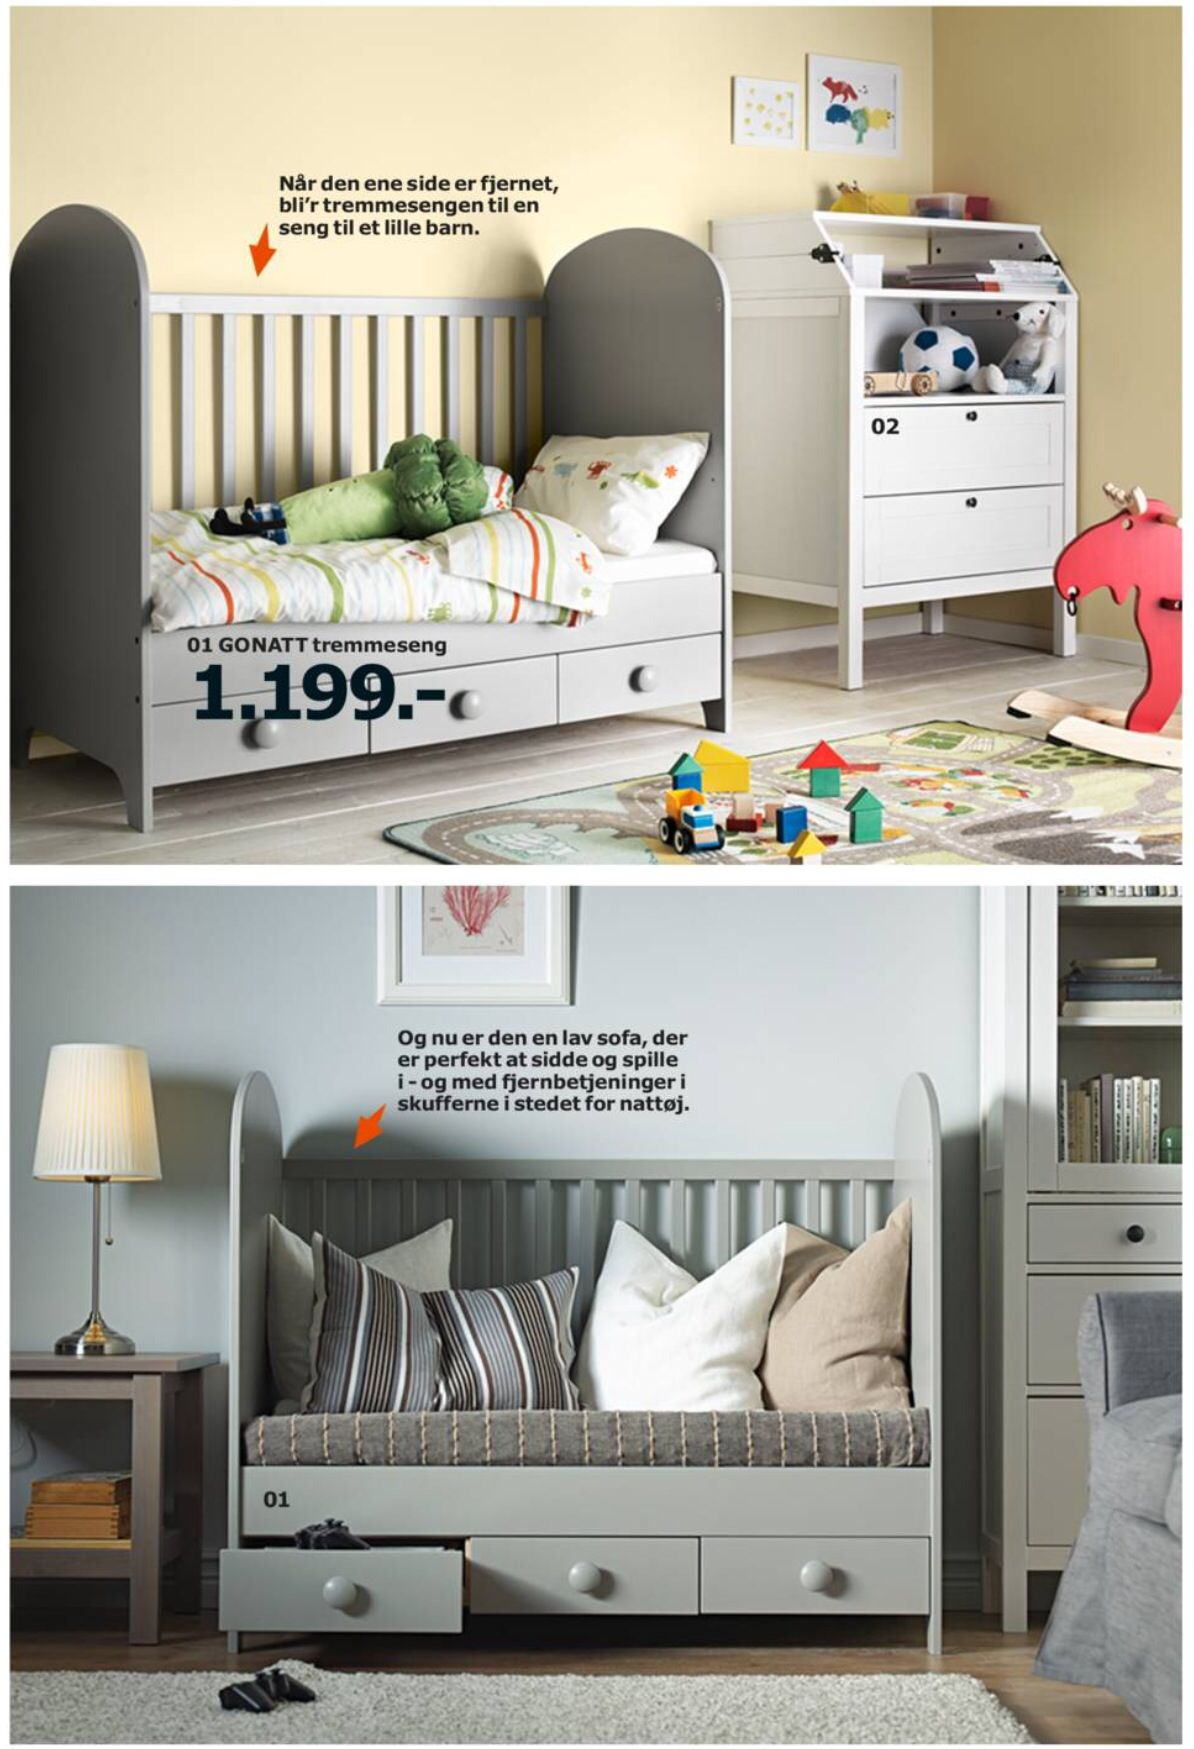 Ikea Gonatt Kids Bed Turn Into Toddler Bed Or Low Couch Room